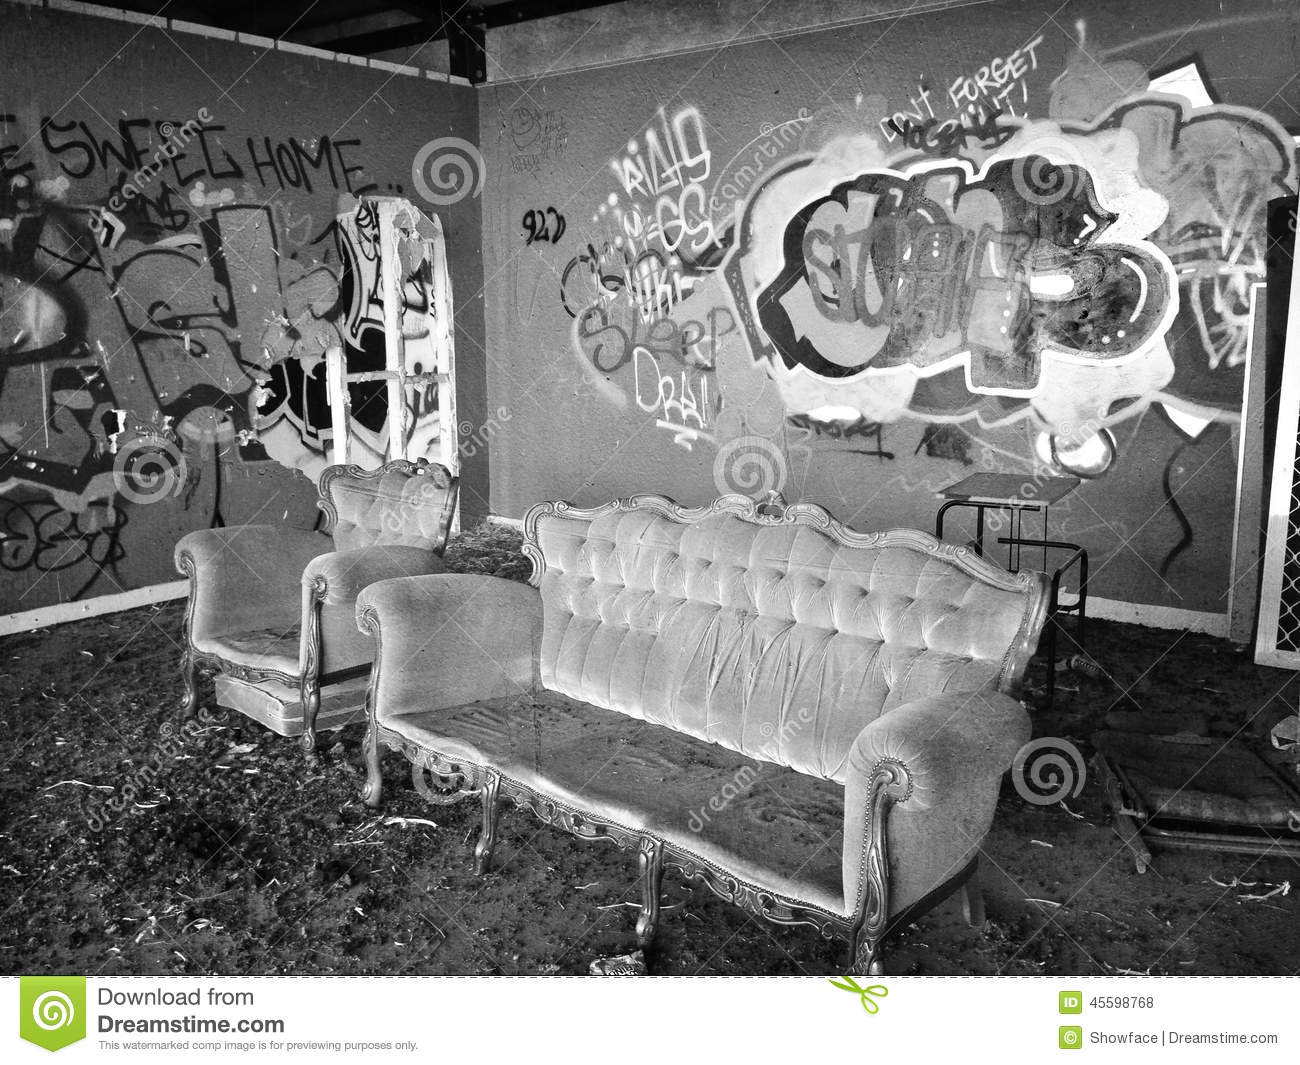 Abandoned Building Showing Illicit Graffiti And Vandalism Willful Damage Throughout